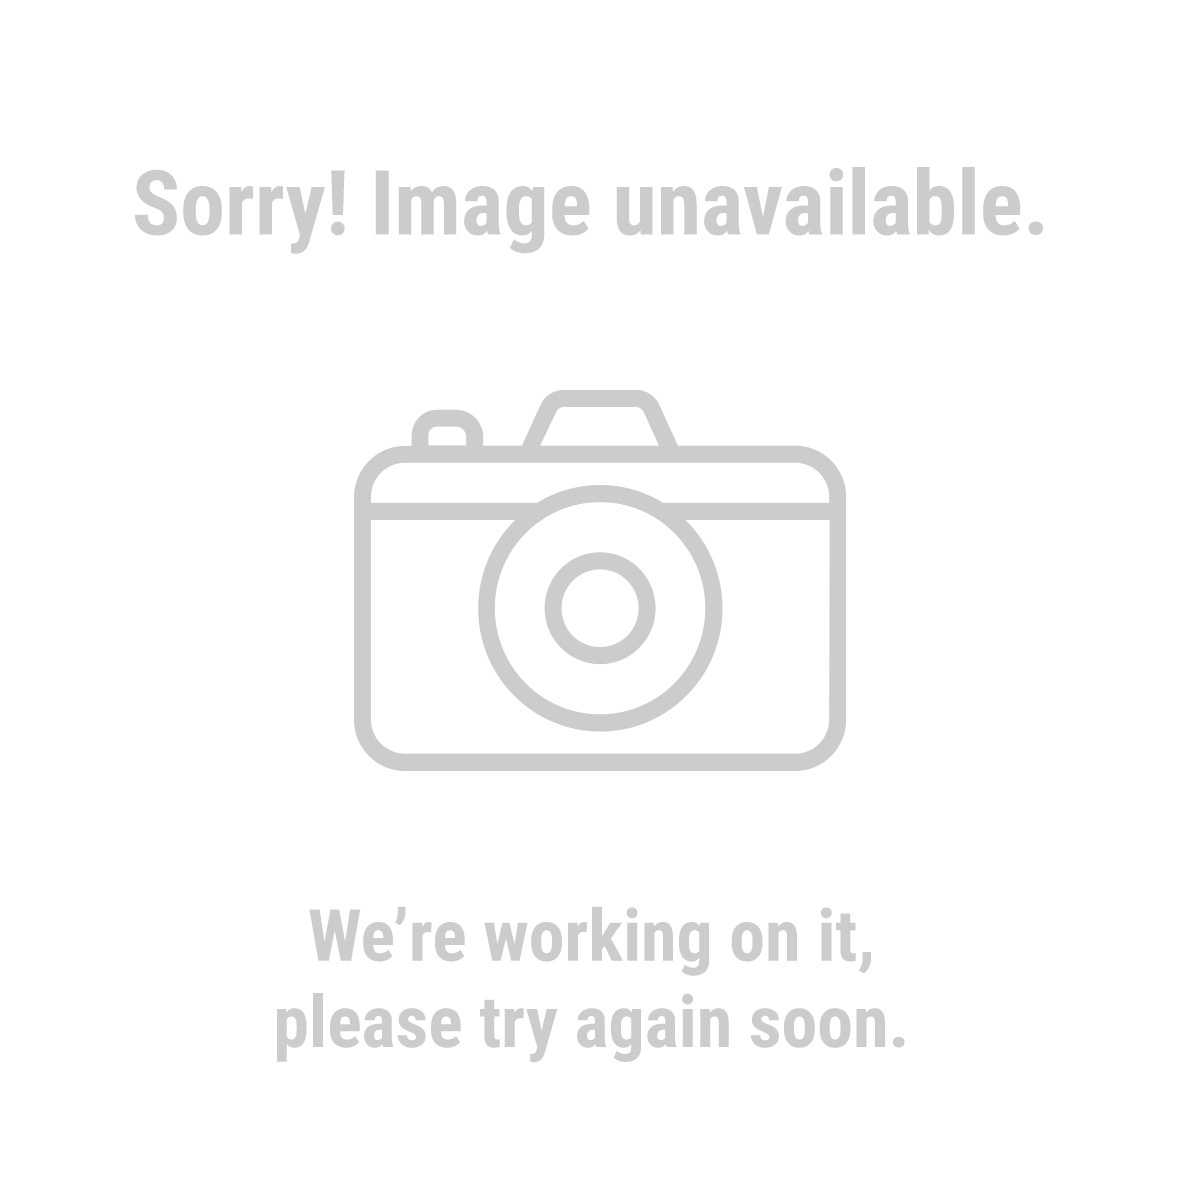 Split Leather Safety Colored Work Gloves 5 Pair